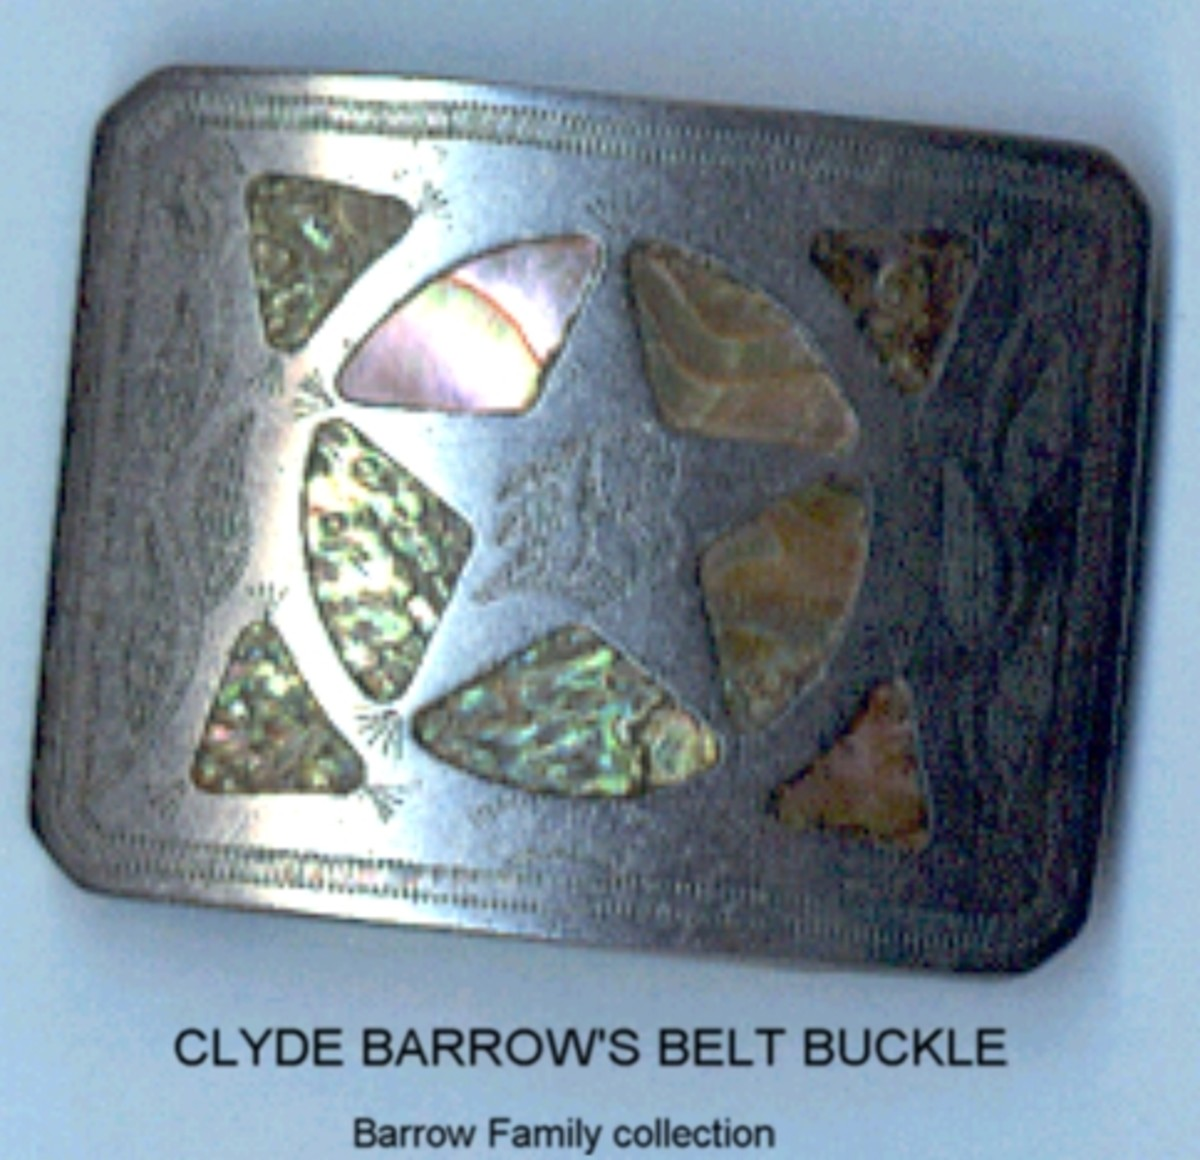 Clyde Barrow's Belt Buckle